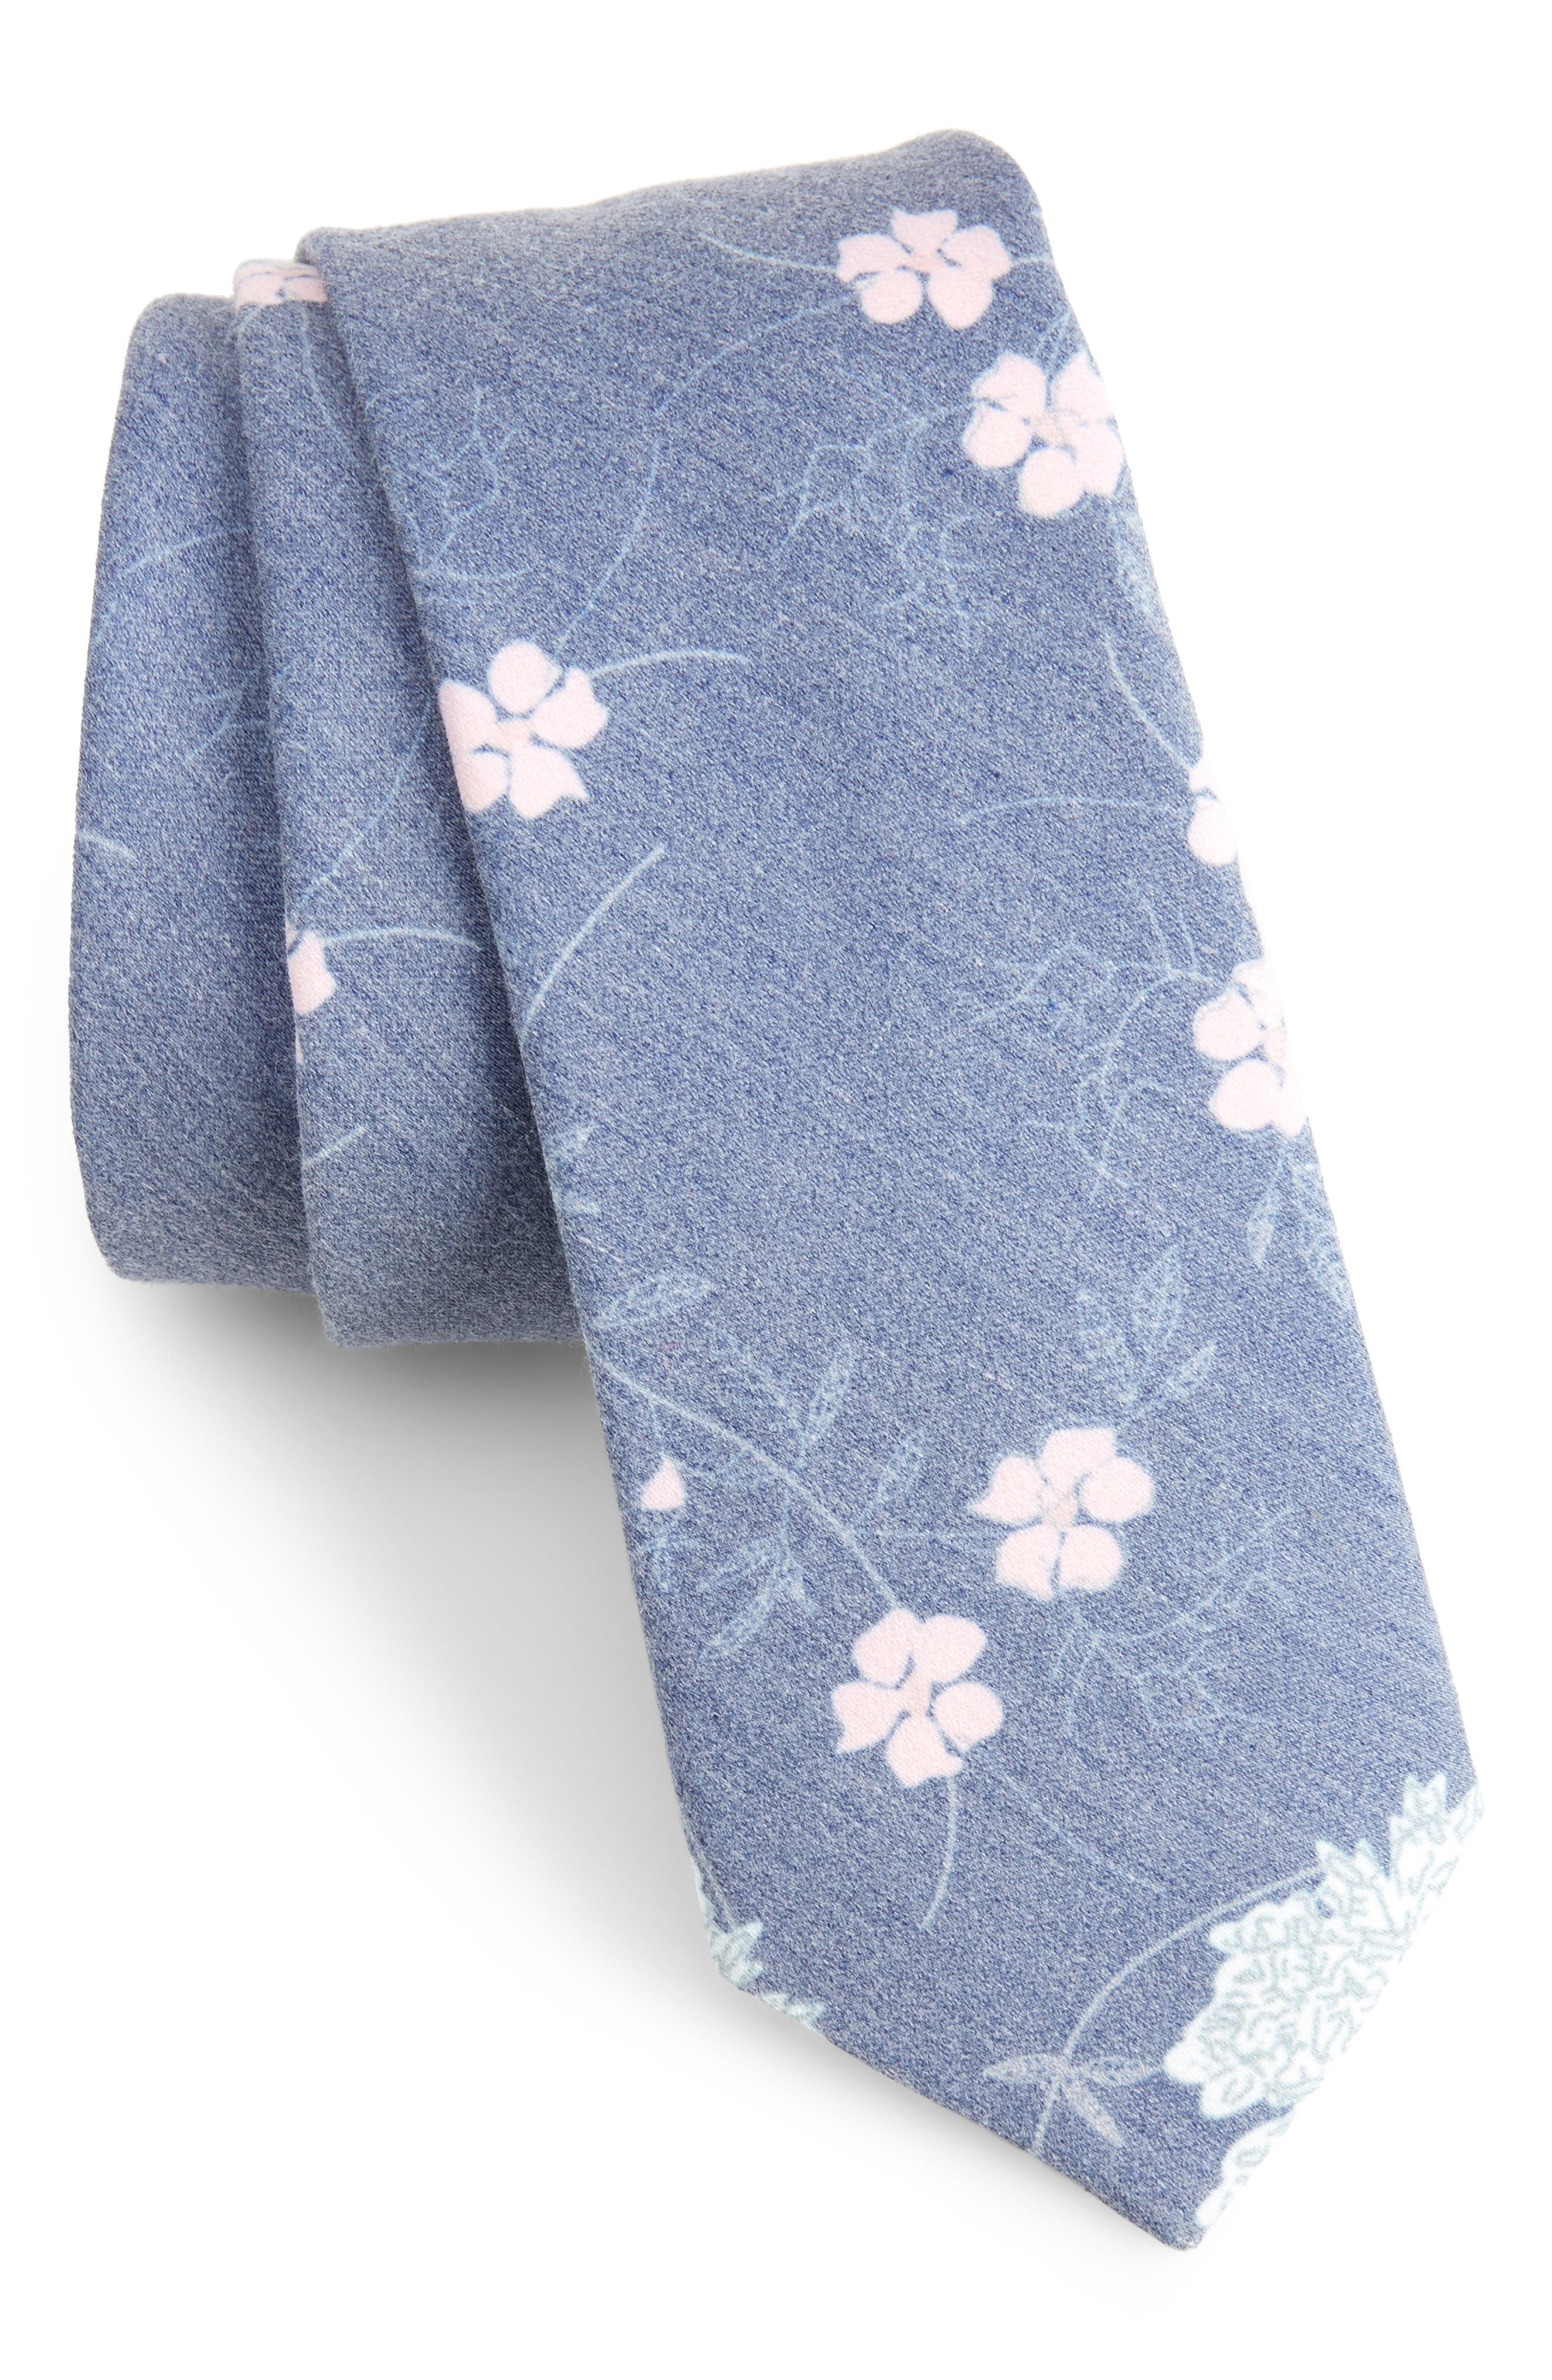 Huntwick Floral Cotton Skinny Tie,                             Main thumbnail 1, color,